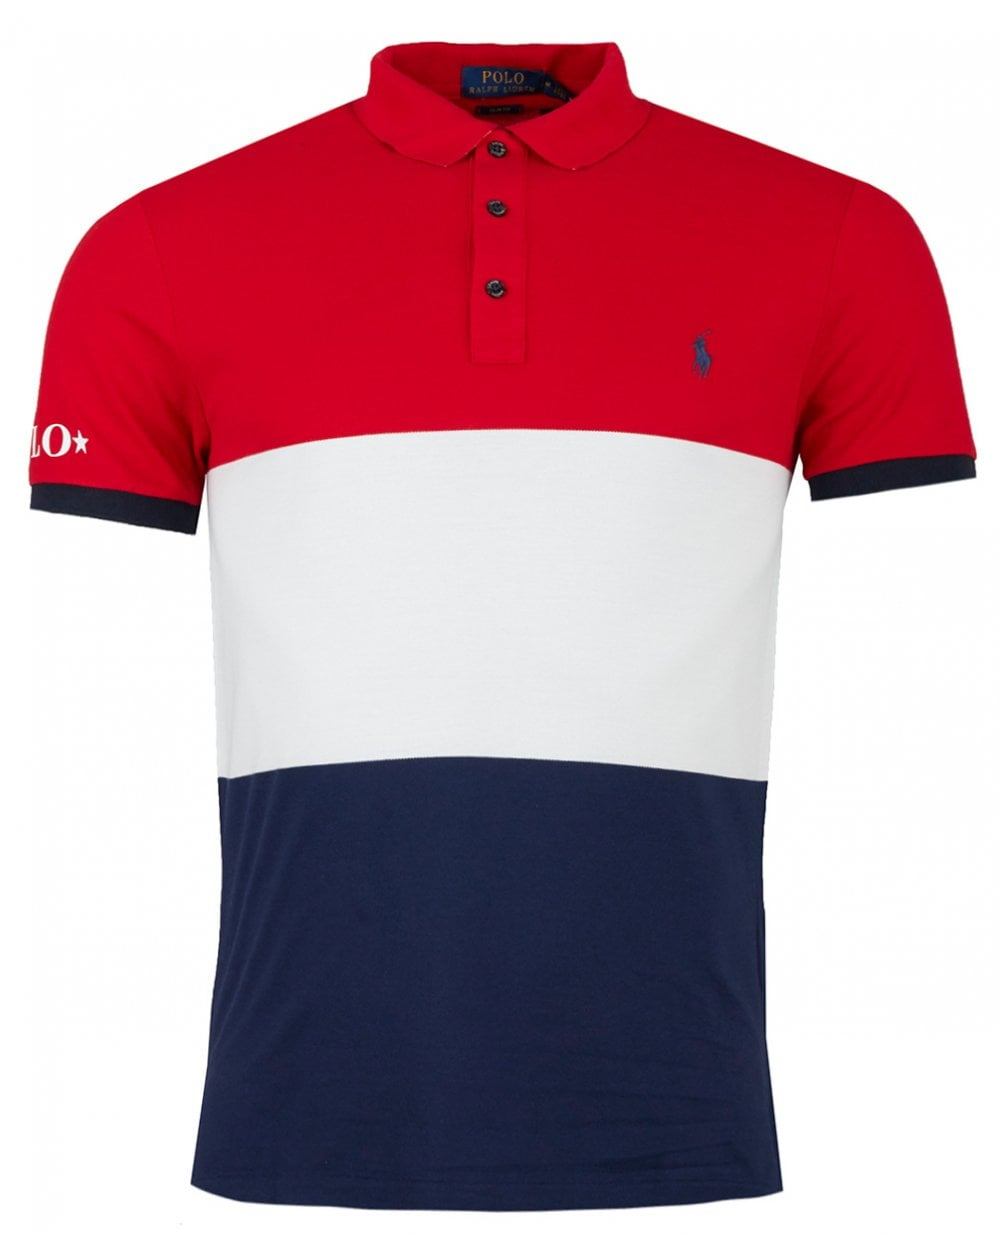 custom-fit-striped-rubber-pp-polo-shirt-p36981-2661529_image